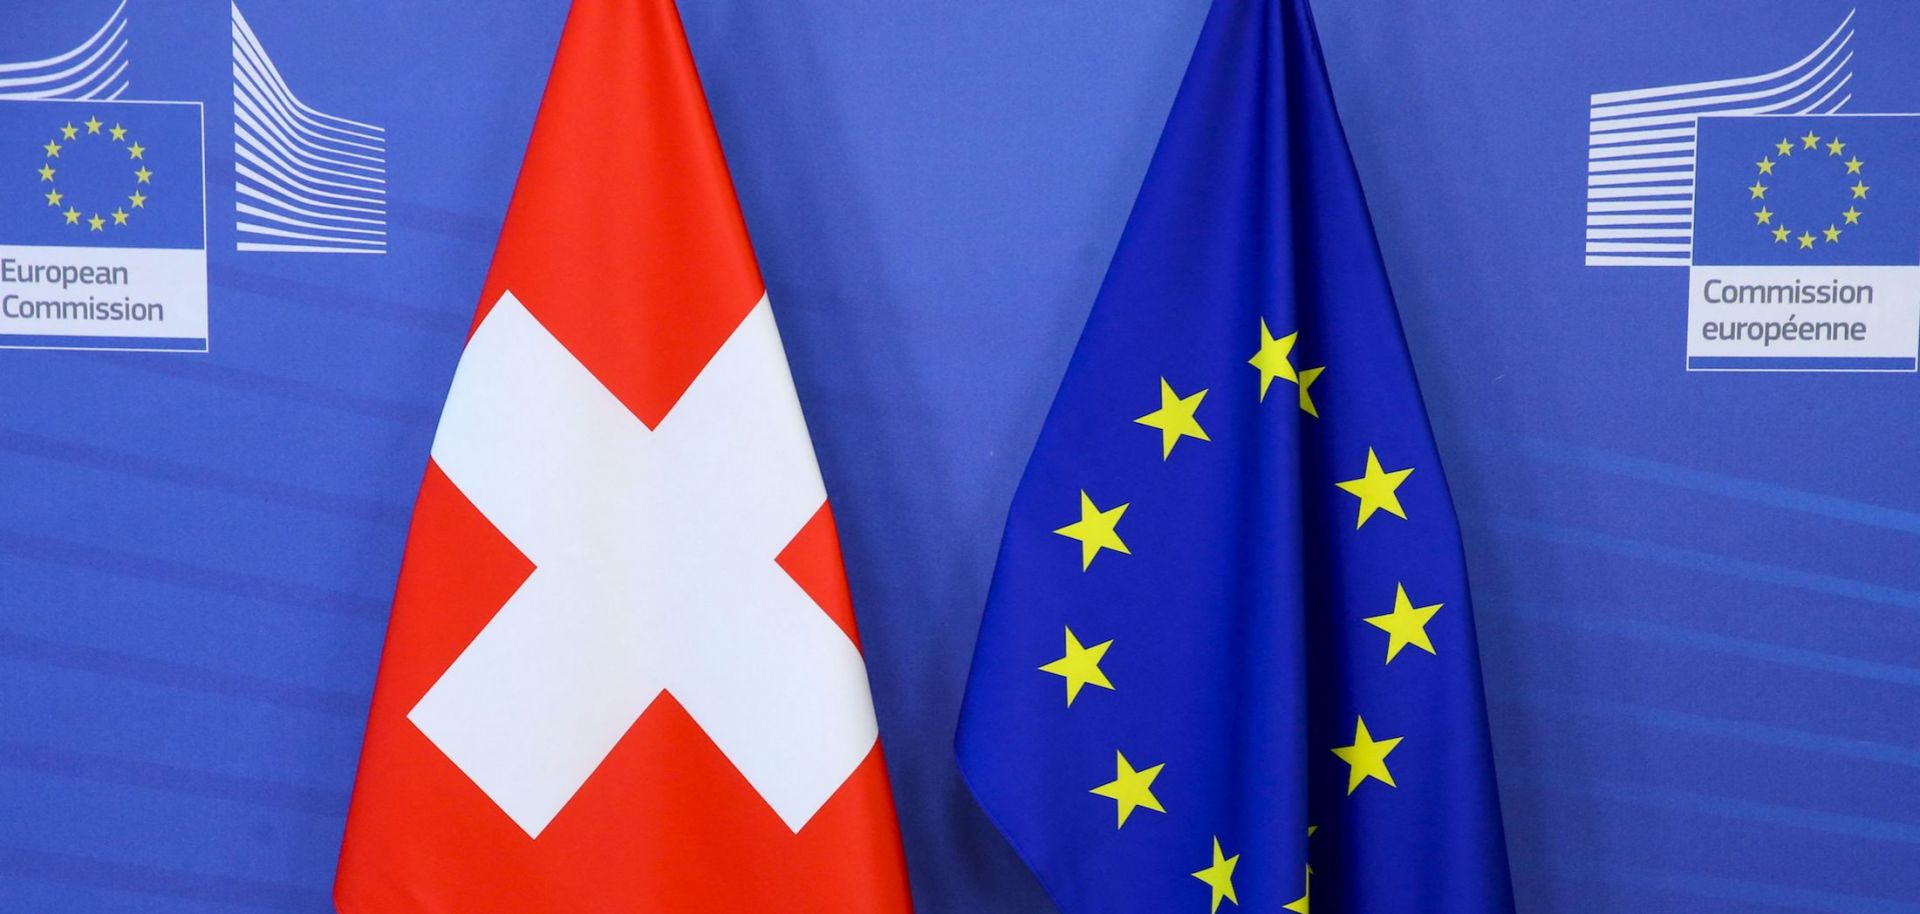 Switzerland's national flag (left) is pictured next to the EU flag at the European Commission building in Brussels, Belgium.